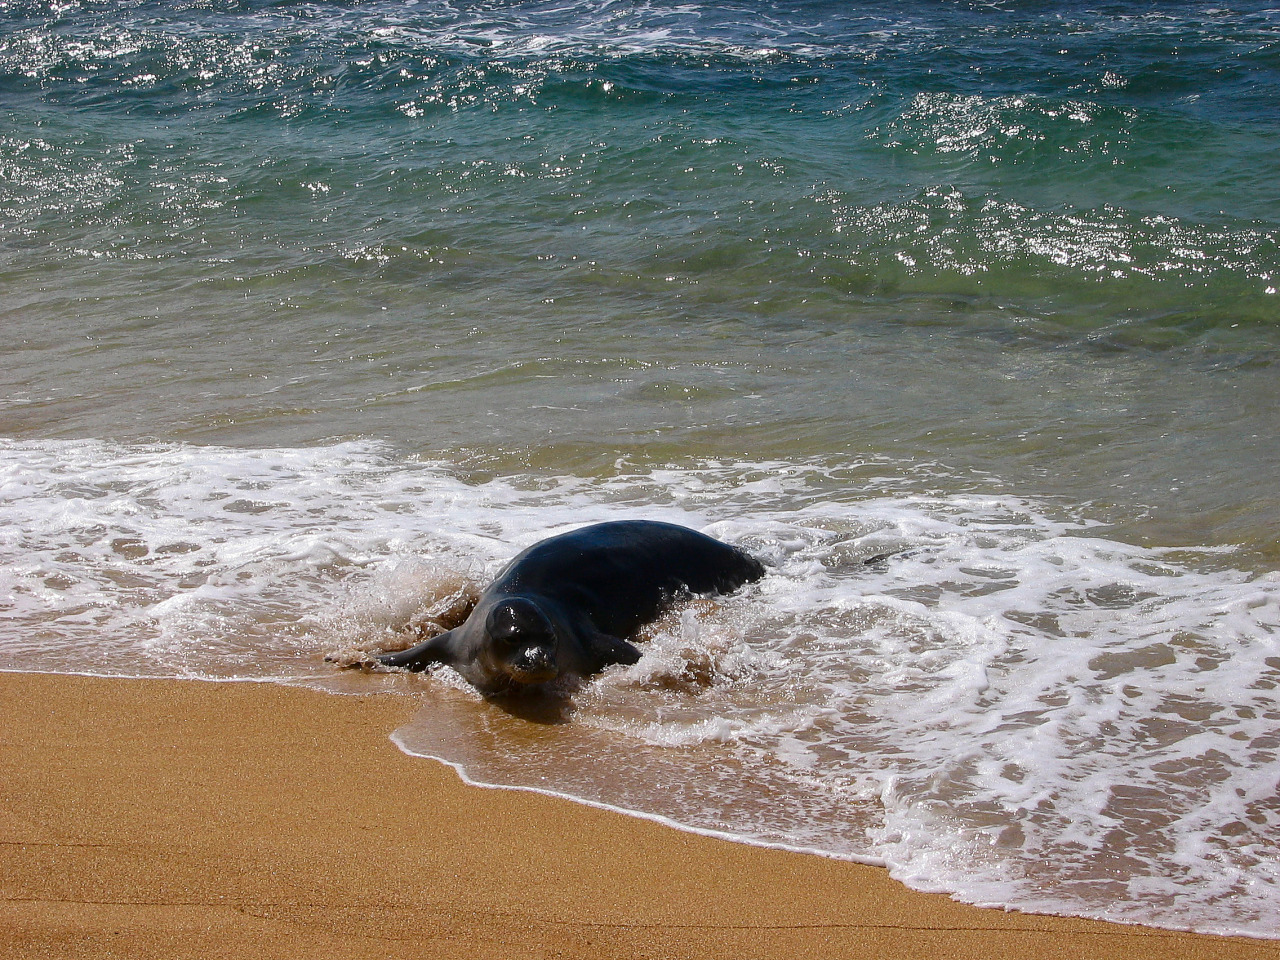 Monk seal fishing on the Hawaii island of Kauai.